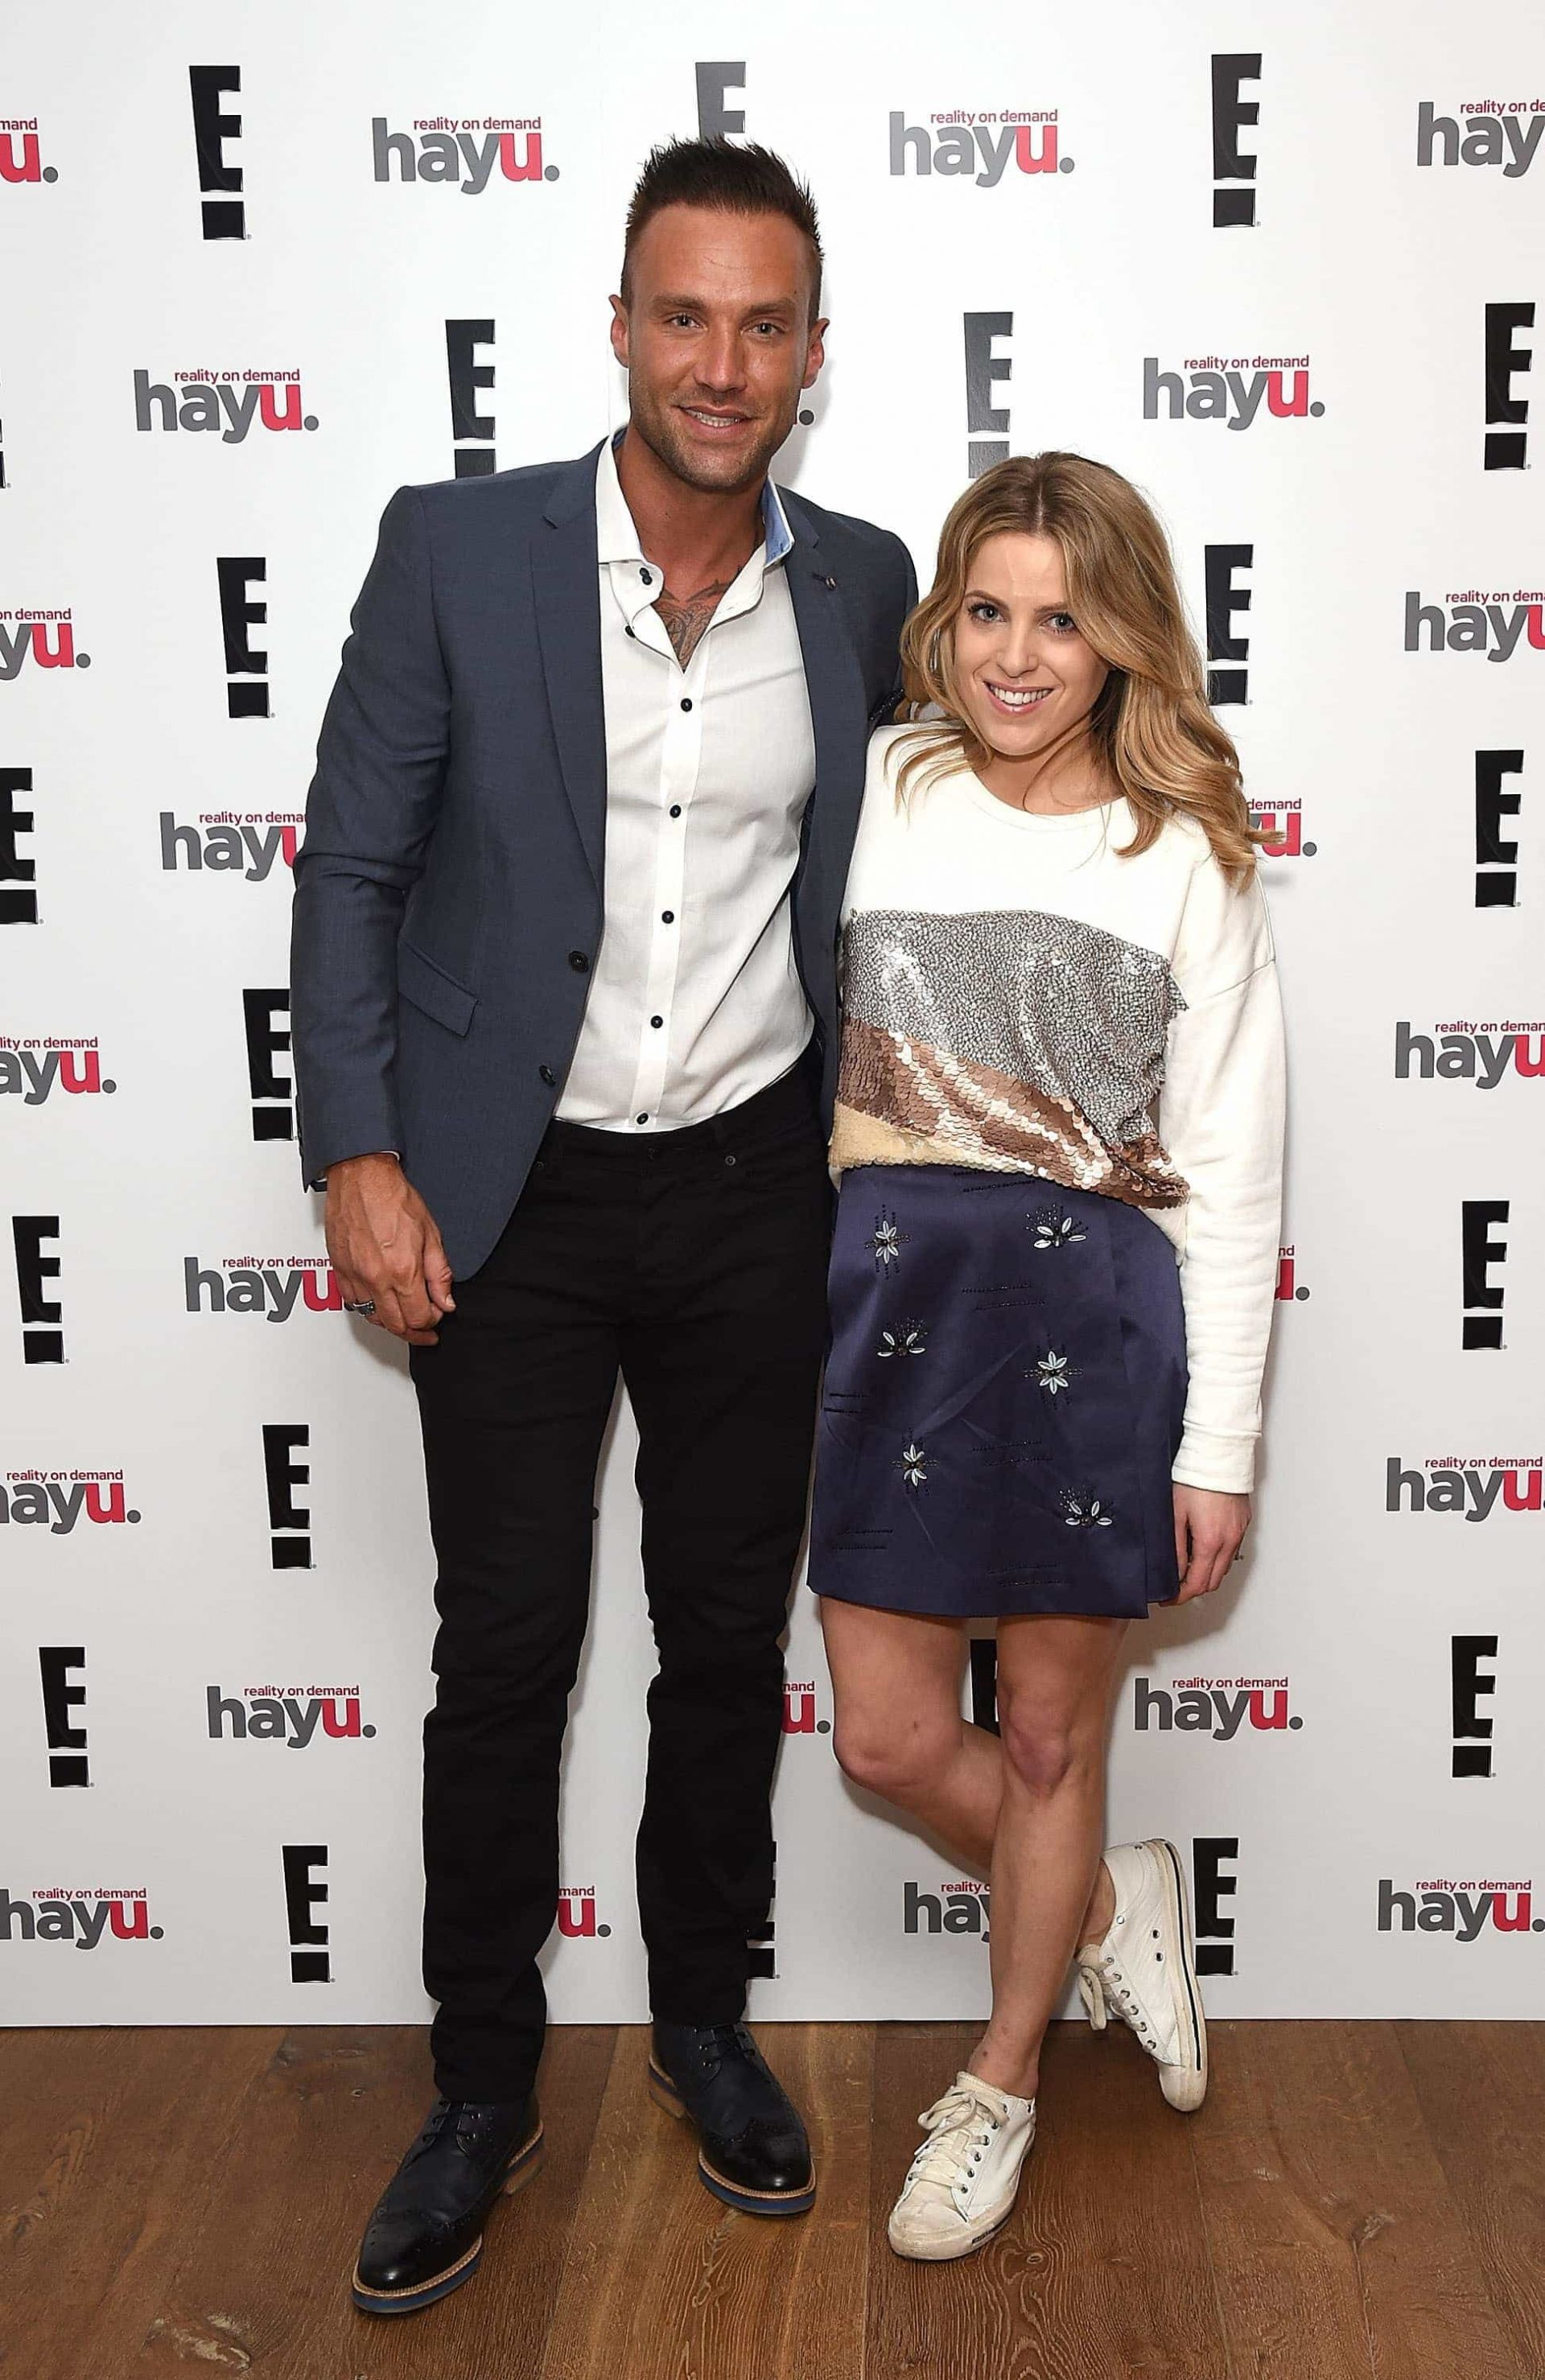 """LONDON, ENGLAND - JUNE 02:  Calum Best and Olivia Cox attend the launch of new US celebrity dating show """"Famously Single"""" featuring Calum Best on June 2, 2016 in London, England. The show will be available on hayu from Wednesday 15th June and on E! Sunday 19th June at 10pm.  (Photo by David M. Benett/Dave Benett/Getty Images for E! / hayu - NBCUniversal) *** Local Caption *** Calum Best; Olivia Cox"""